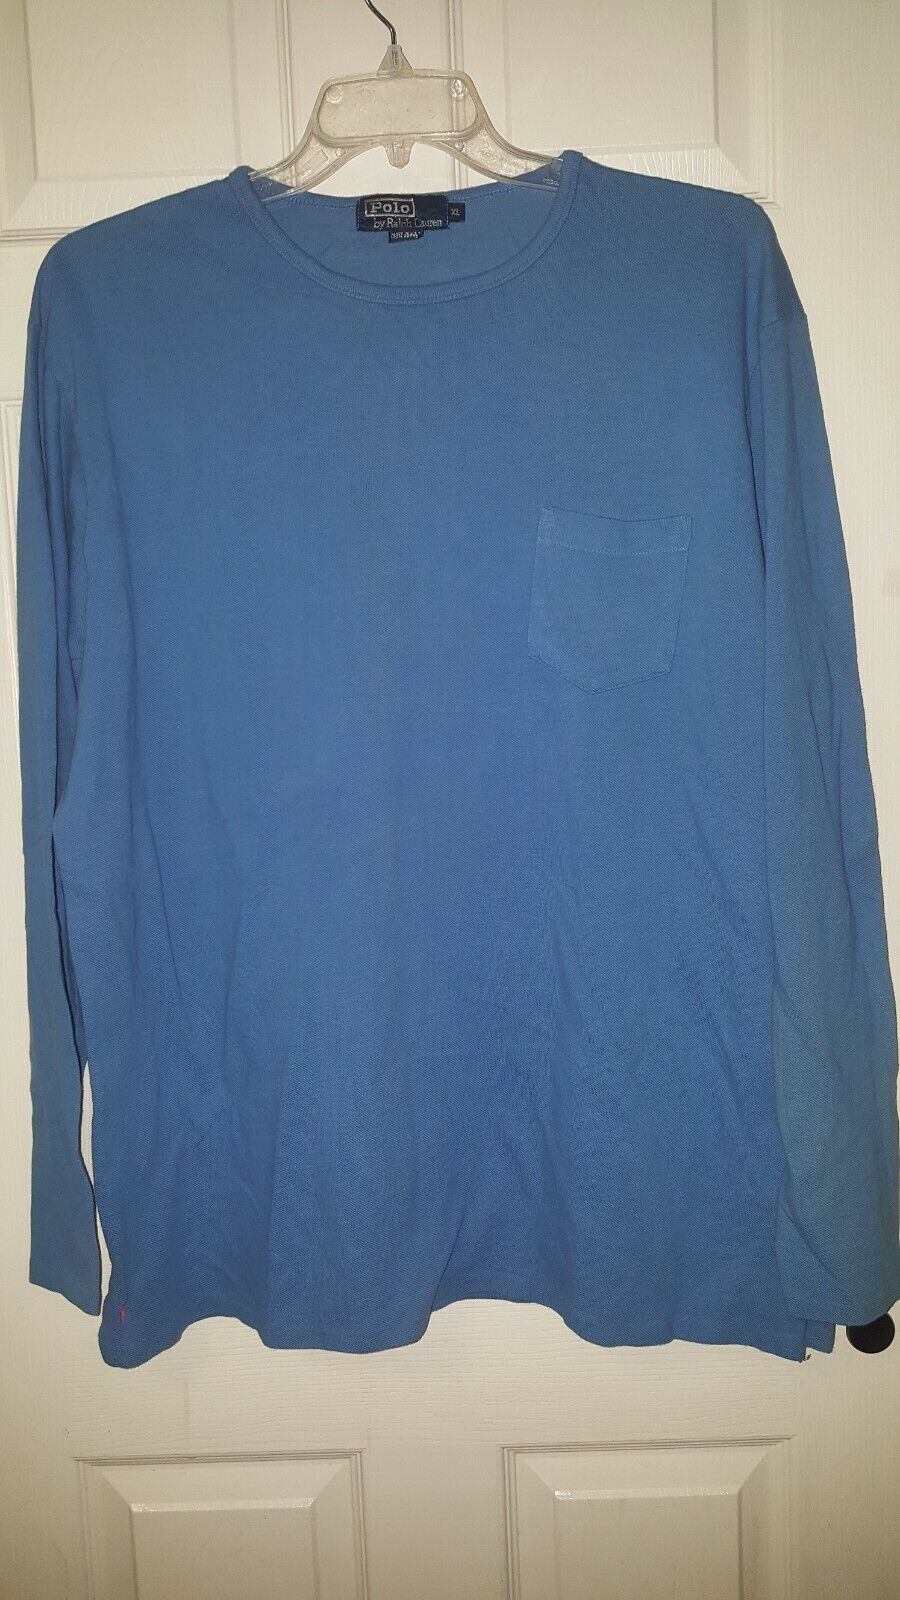 80's Vintage Polo by Ralph Lauren Knit Long Sleev… - image 2